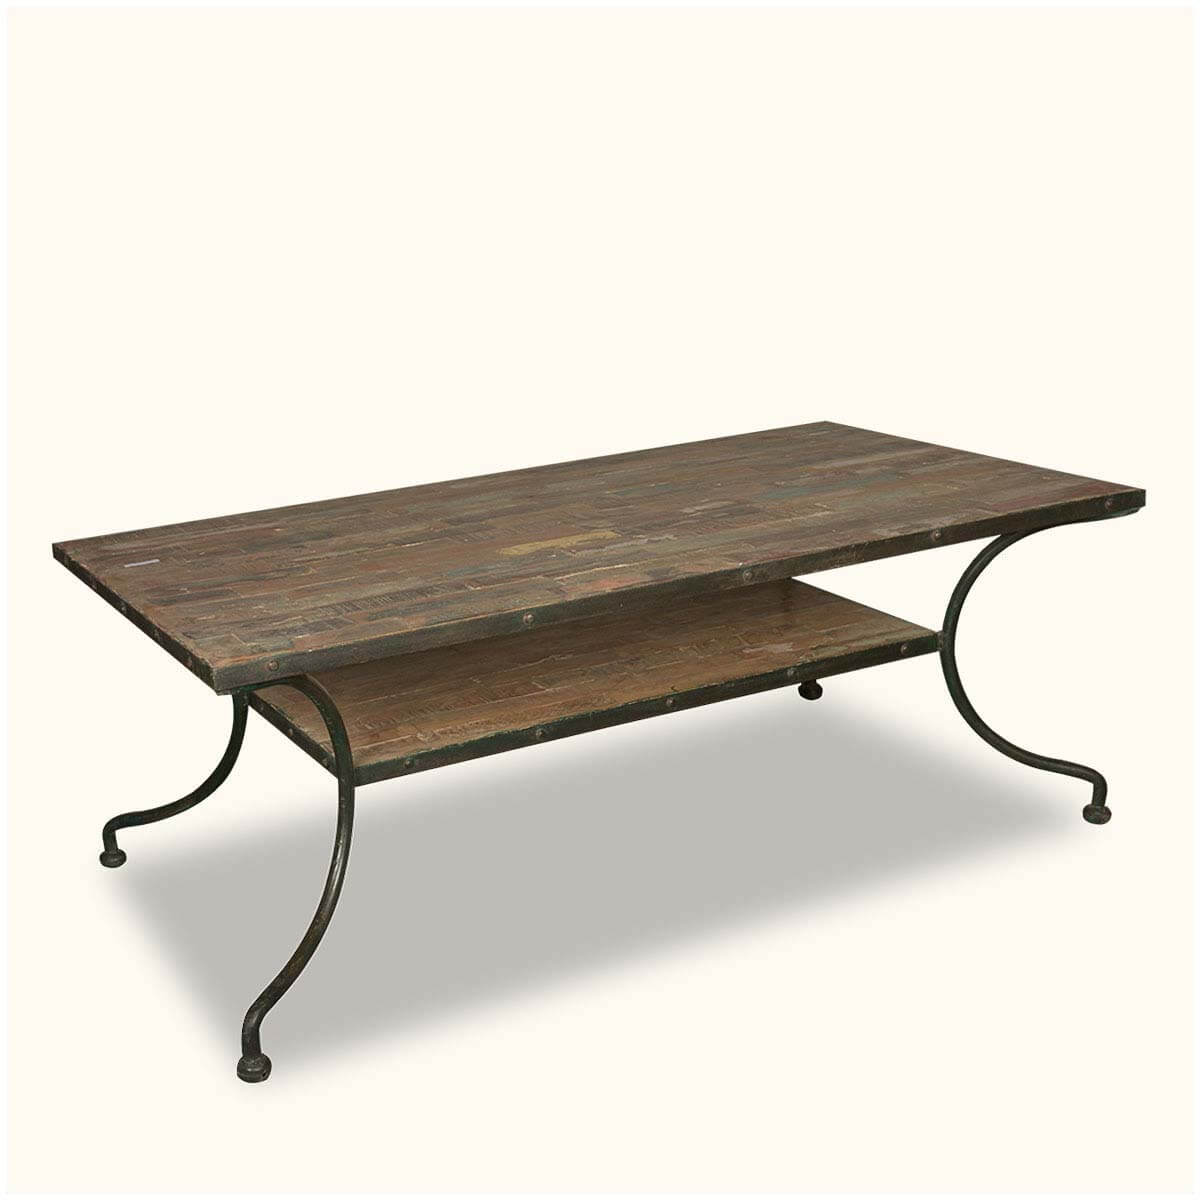 Reclaimed wood iron industrial 2 tier rustic coffee table Rustic iron coffee table